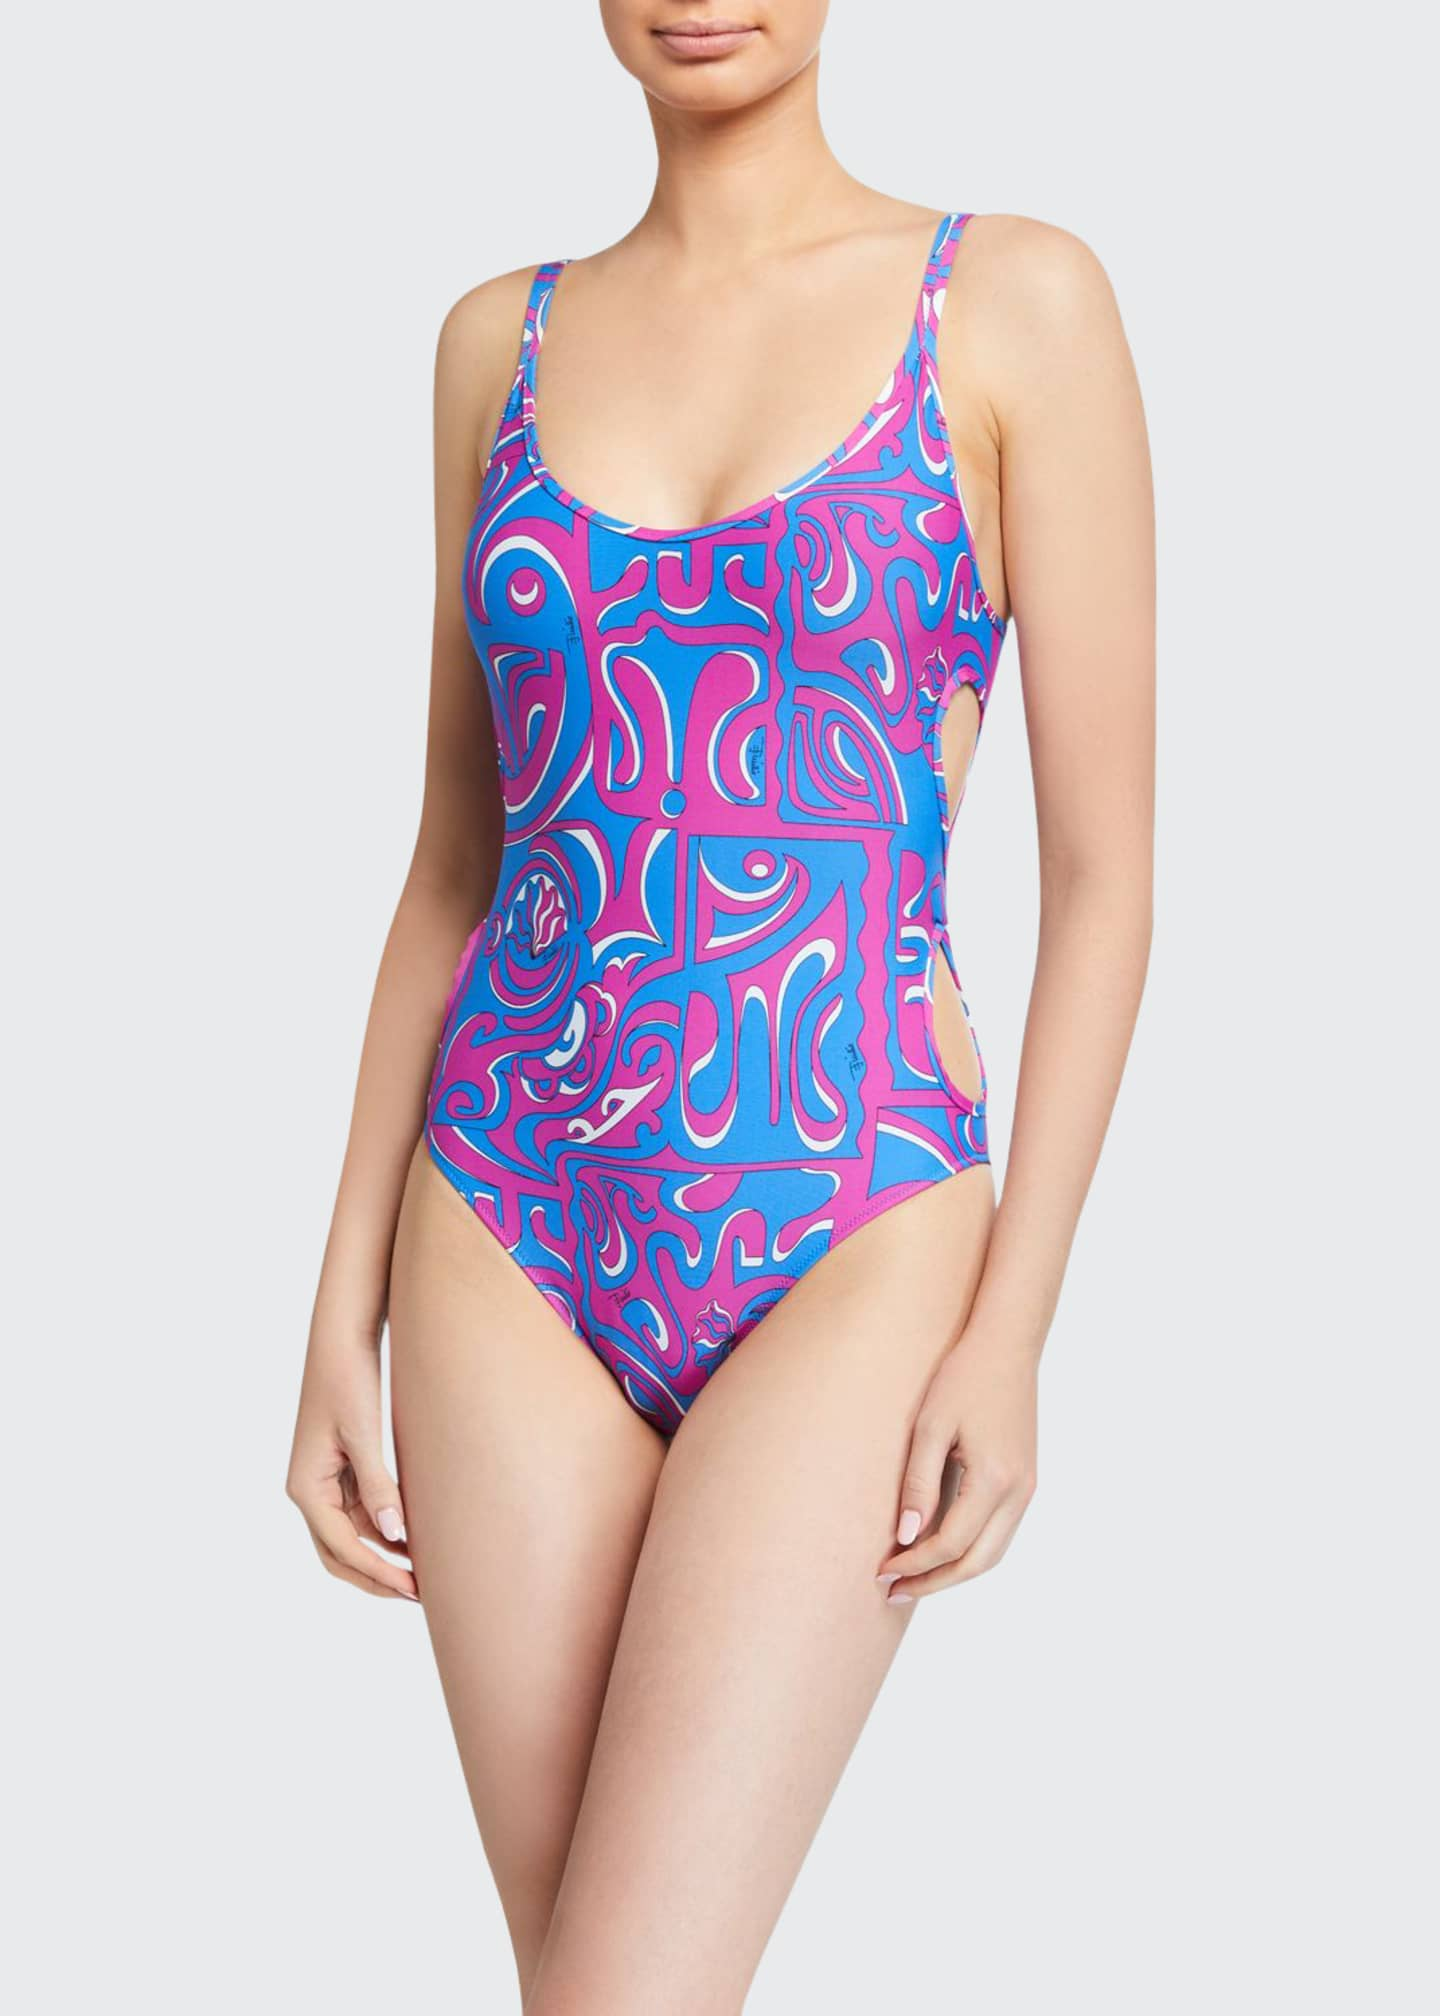 Emilio Pucci Printed Cutout One-Piece Swimsuit